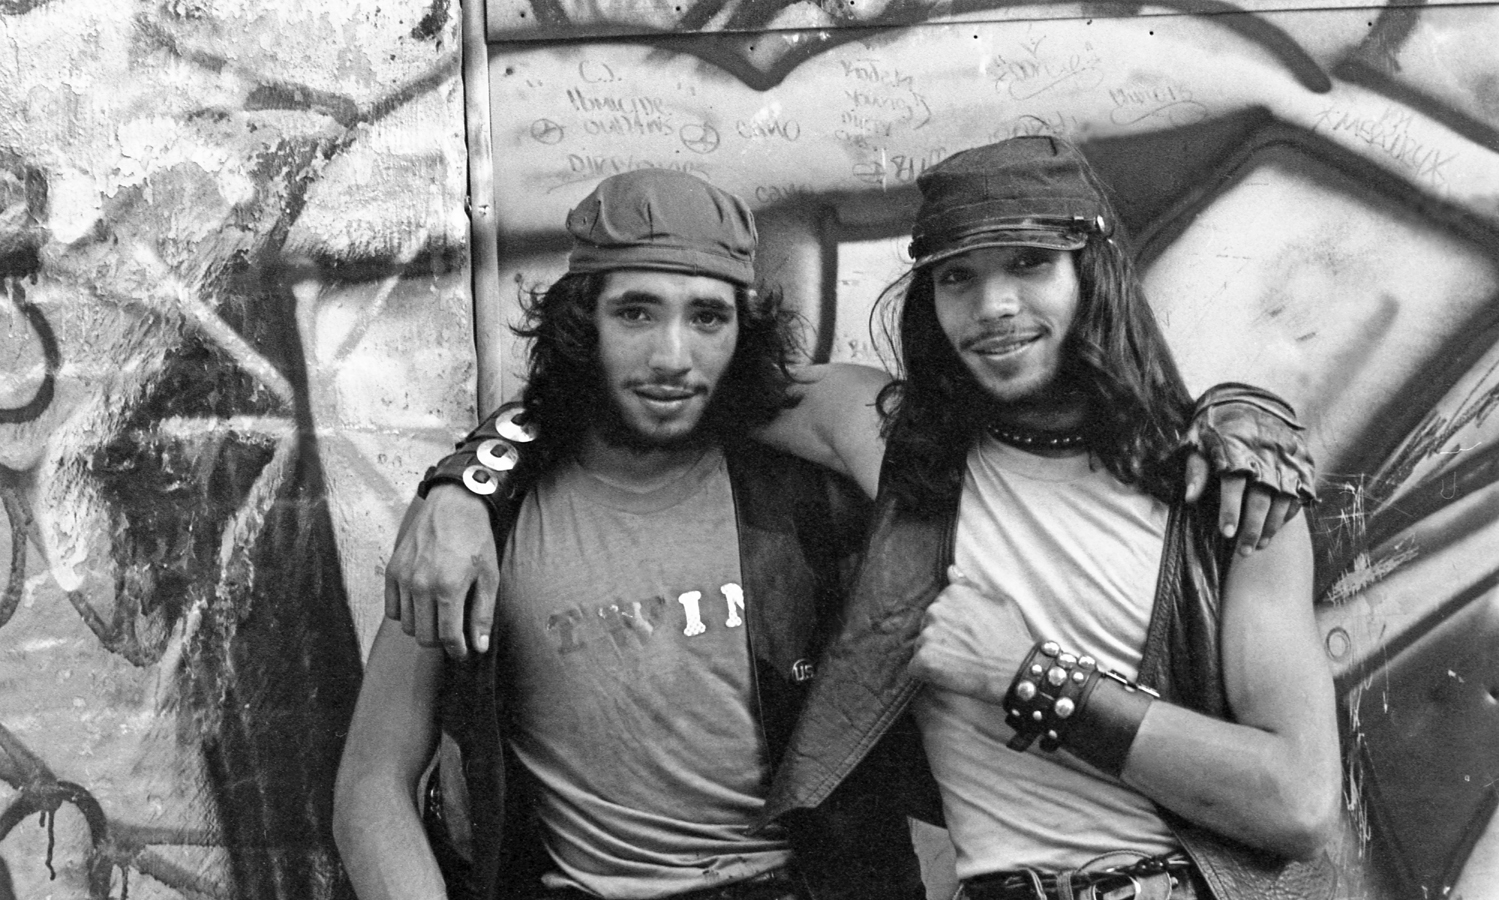 Edwin and Edgar were probably 17 when we met. I noticed that the twins had undeniable leadership qualities. After all they were the leaders of The Dirty Ones. I liked them and felt an affinity for them.